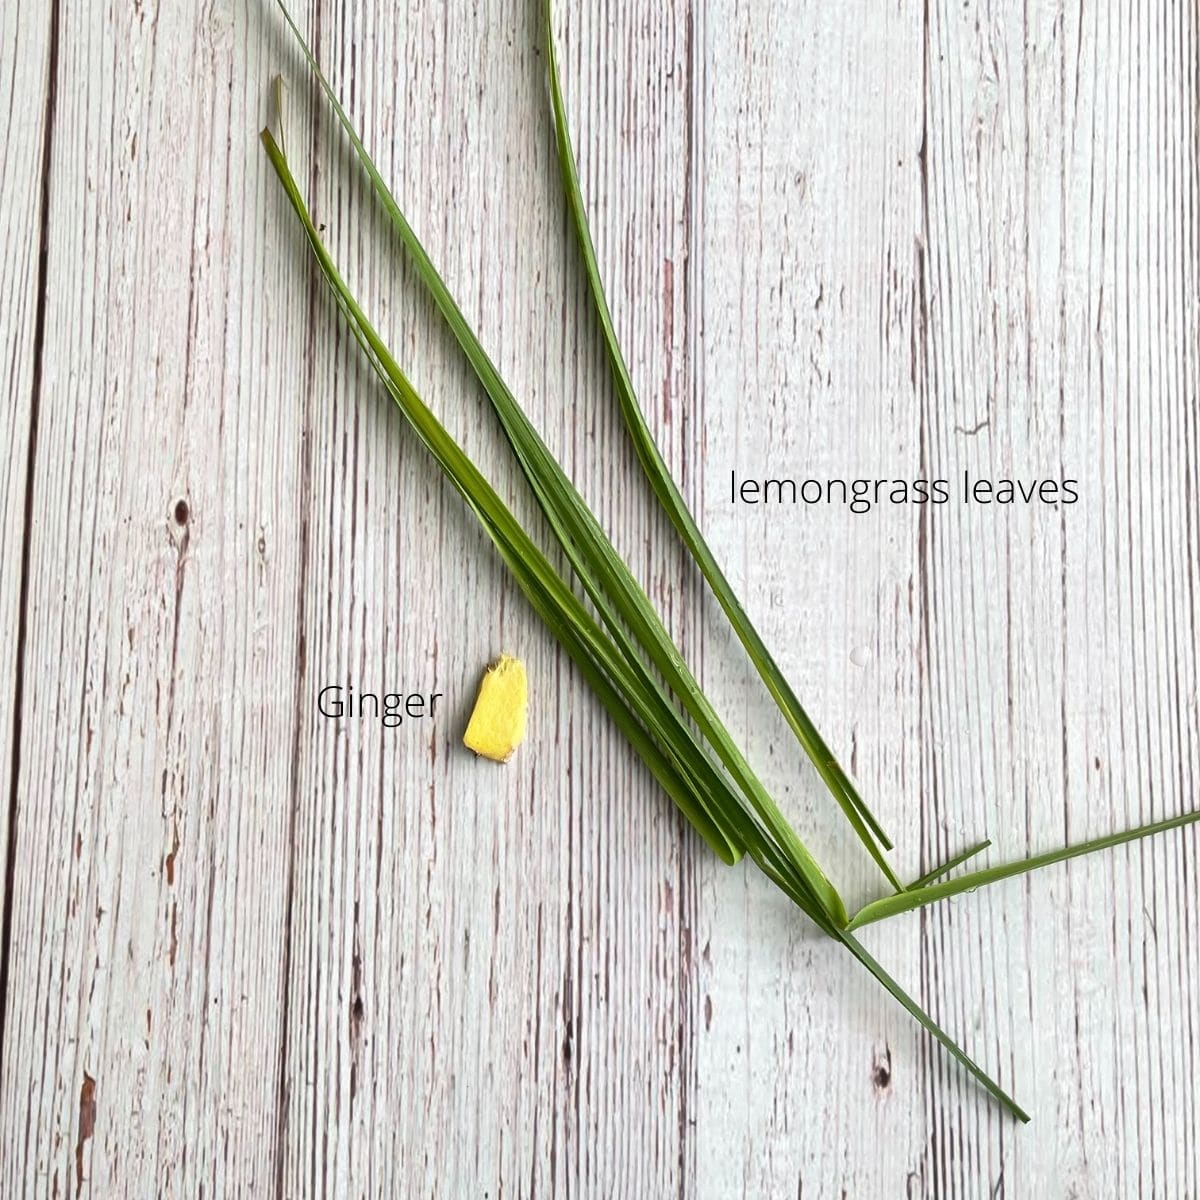 lemongrass leaves, and ginger root is on the table.